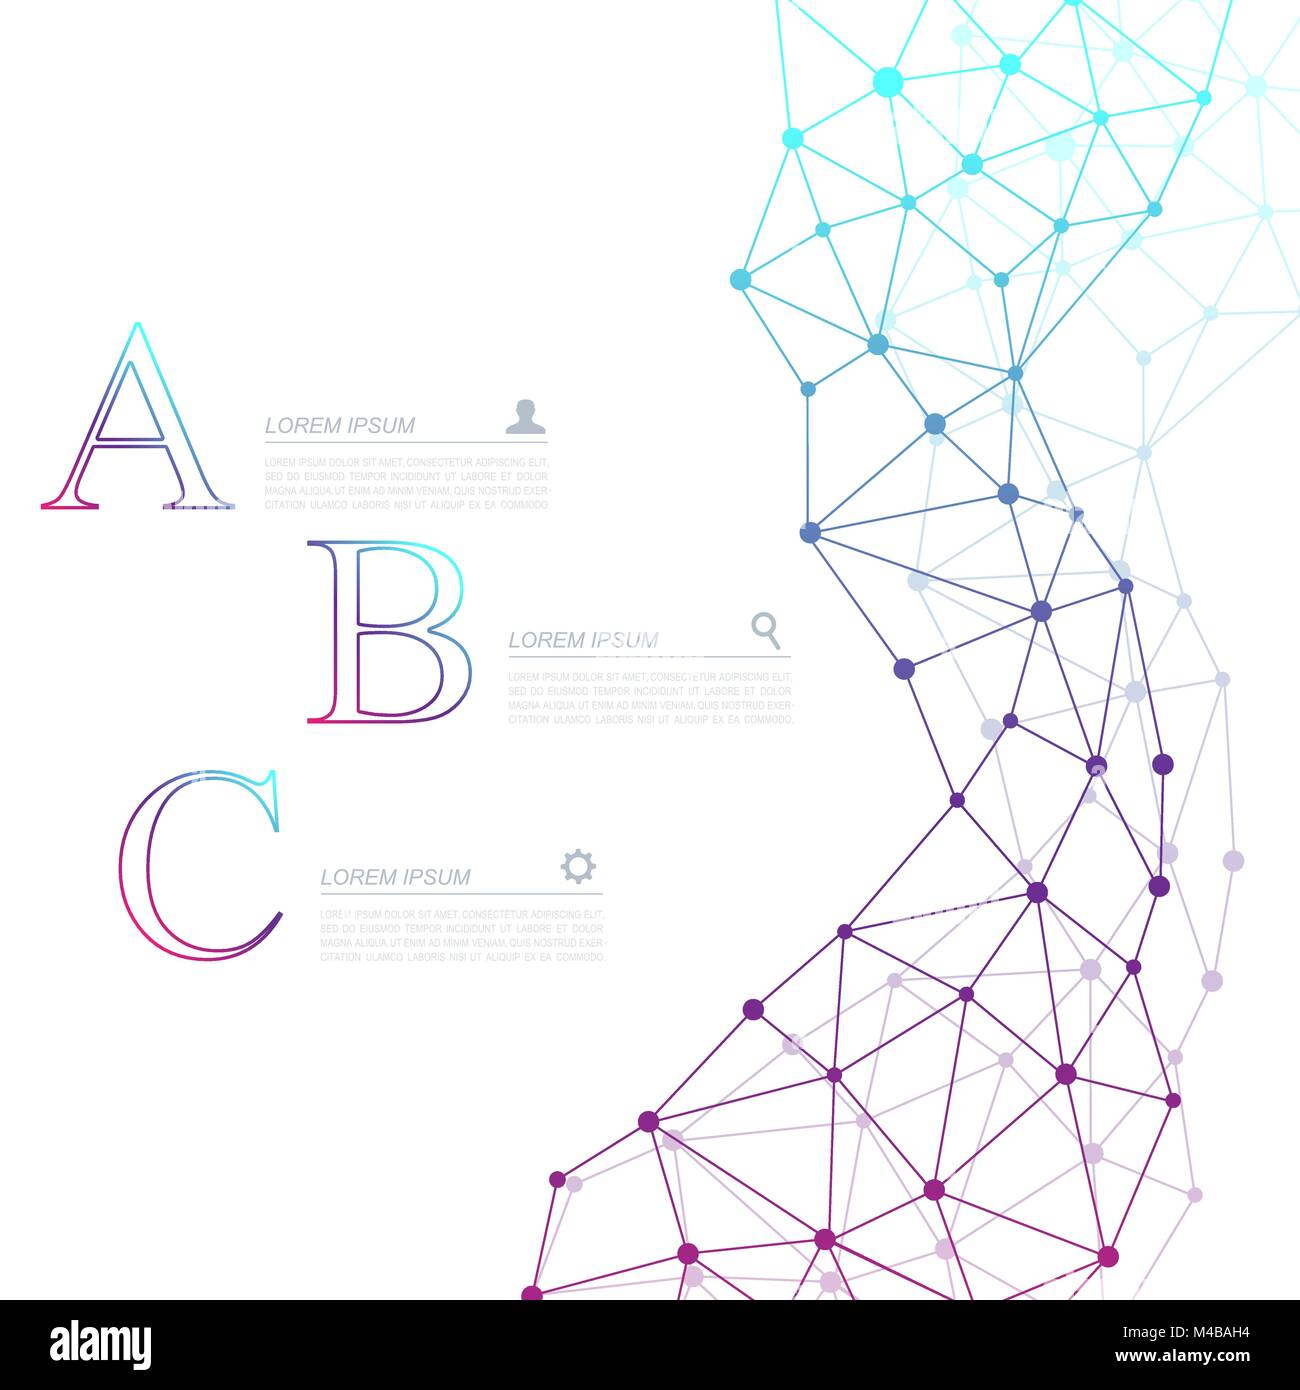 Abstract dna molecule vector business infographic medical chemistry abstract dna molecule vector business infographic medical chemistry infographic design scientific business template with options for brochure diagram ccuart Gallery